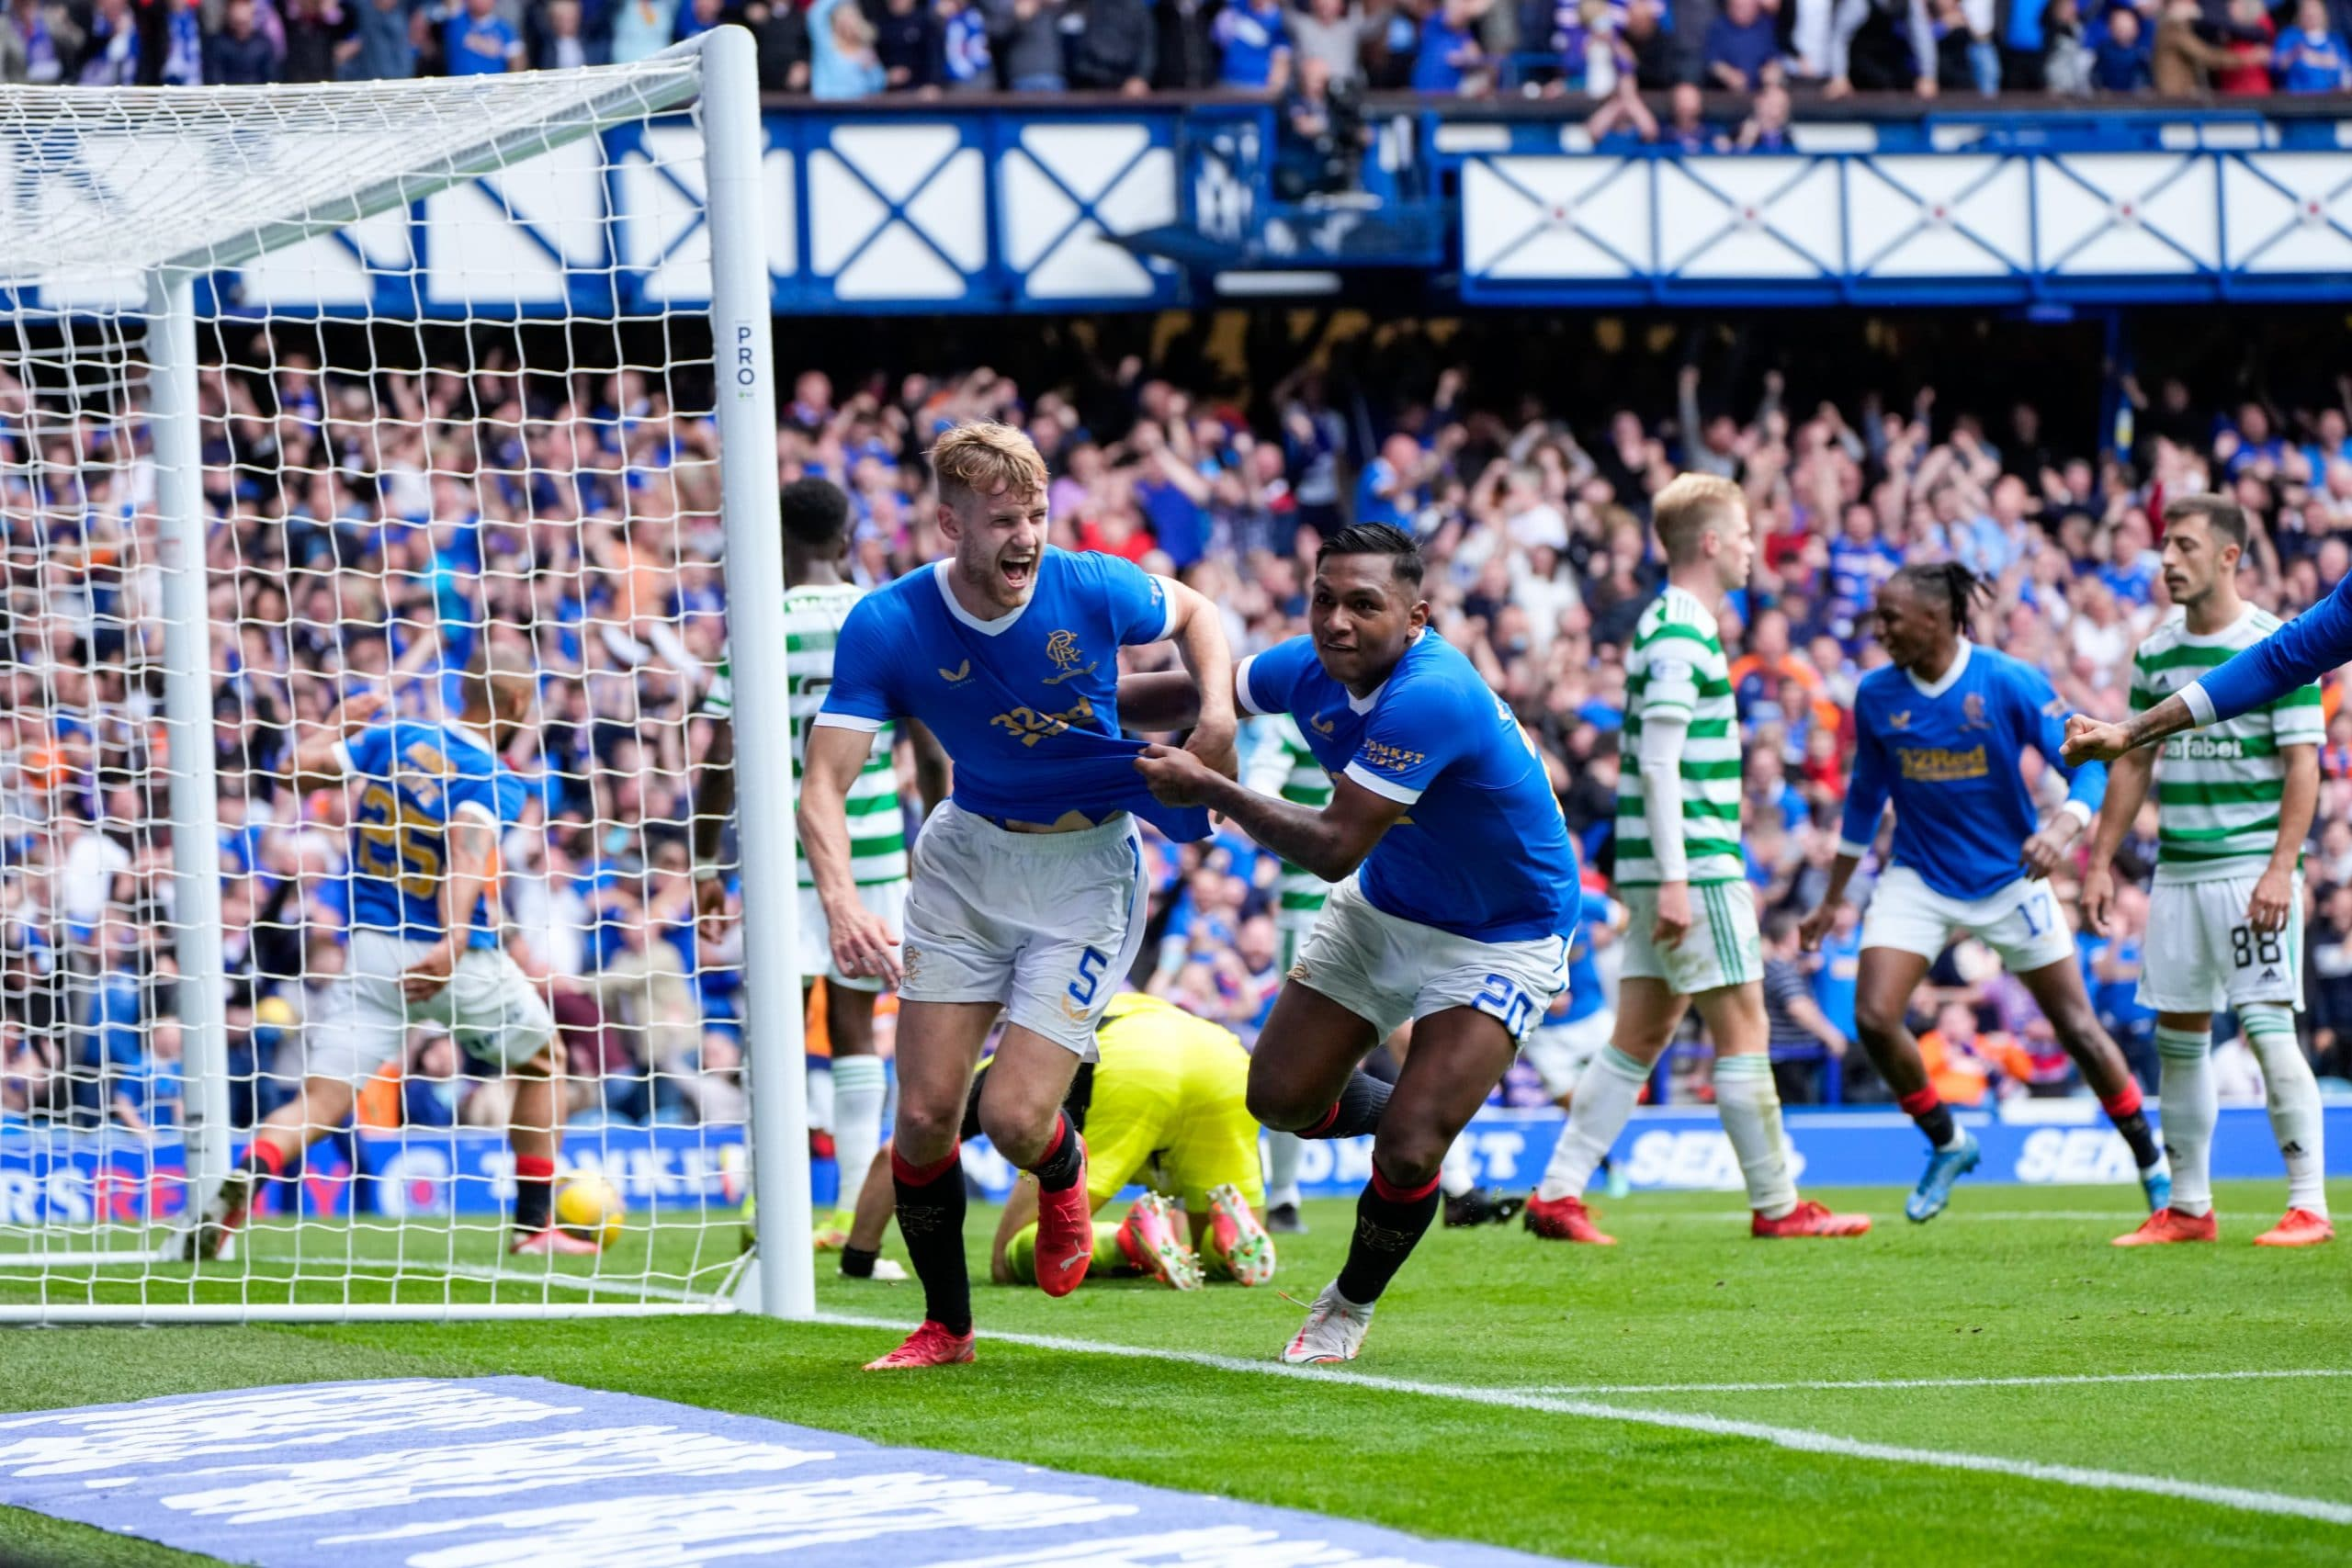 Scotland: Aribo, Balogun Star As  Depleted Rangers Beat Celtic In Old Firm Derby